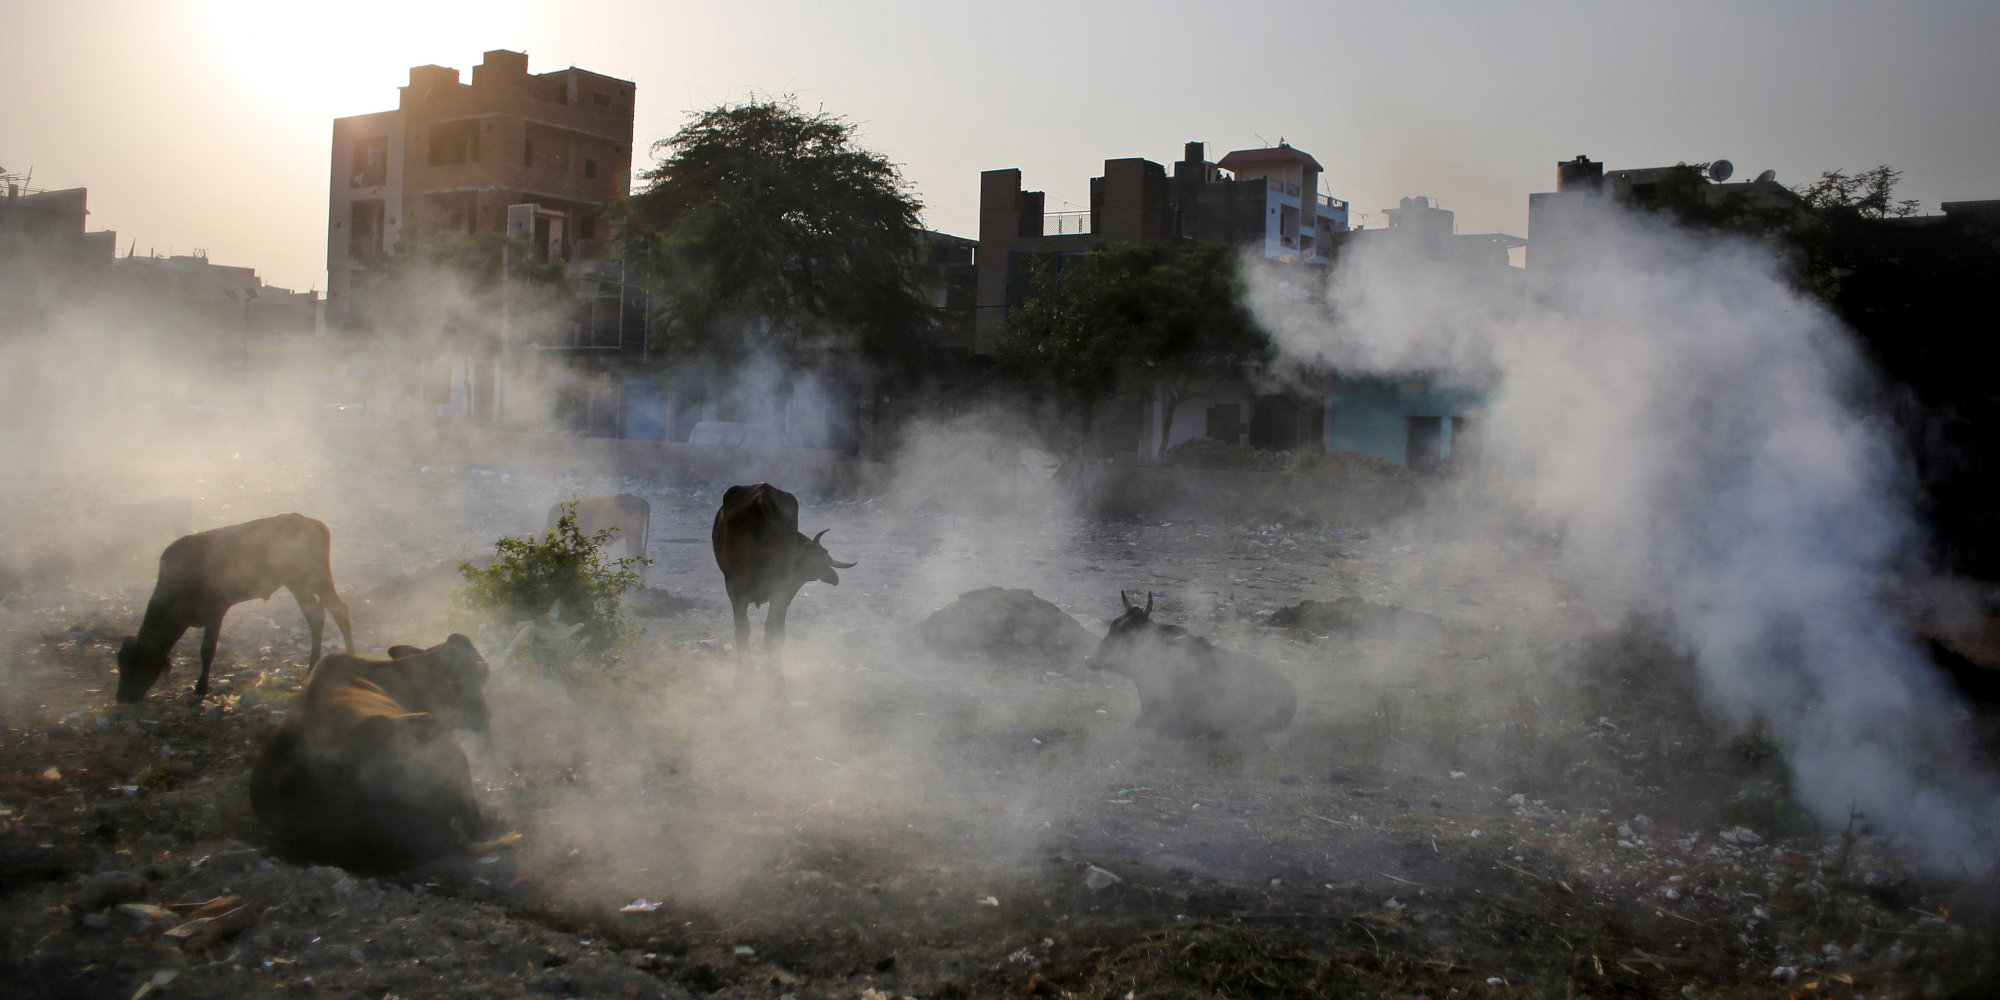 effects of air pollution in delhi Smog hanging over cities is the most familiar and obvious form of air pollution but there are different kinds of pollution—some visible, some invisible—that contribute to global warming generally any substance that people introduce into the atmosphere that has damaging effects on living things.